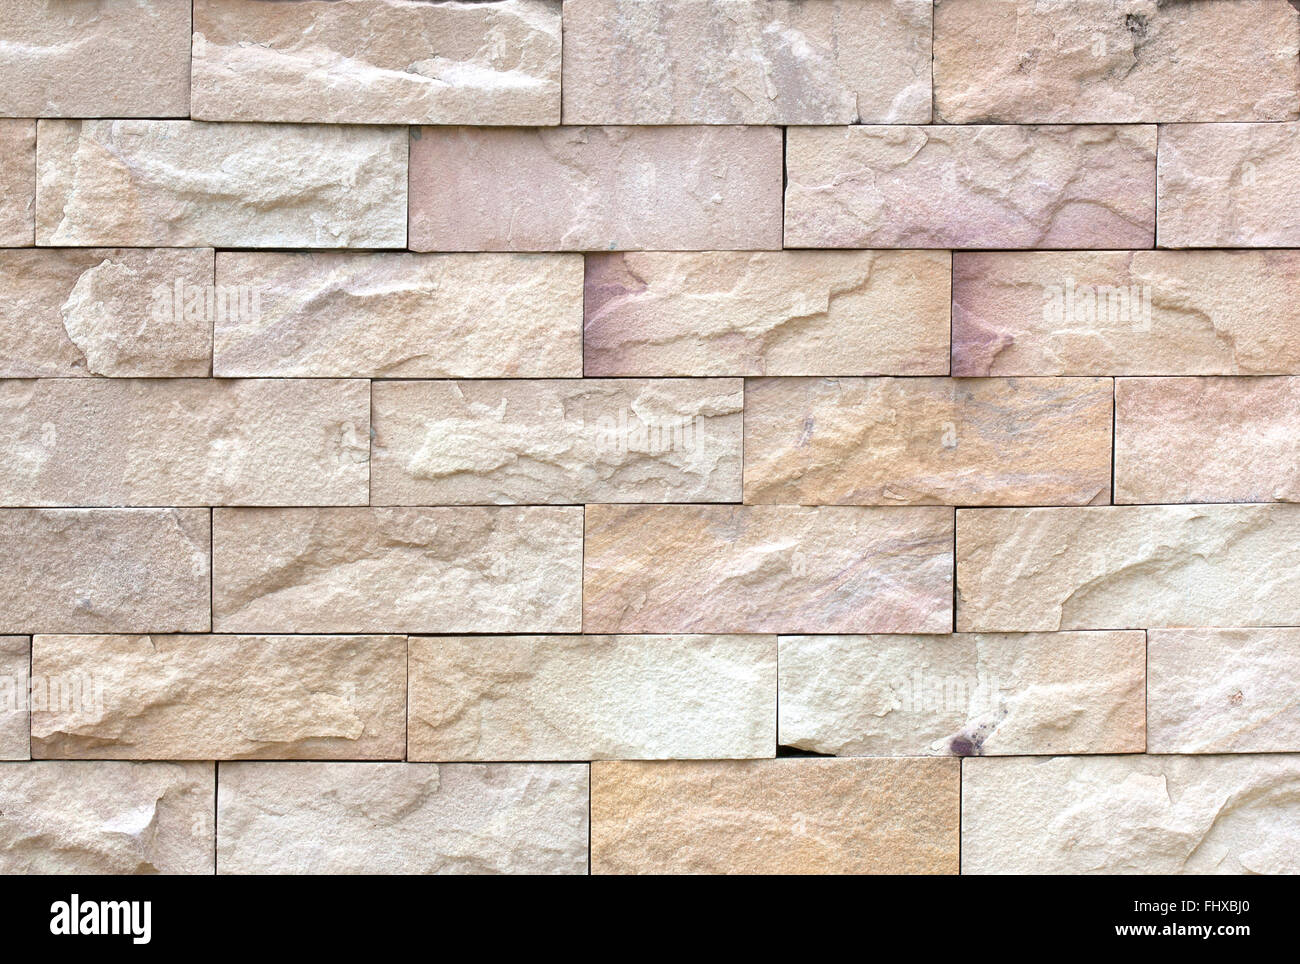 Texture of stone walls exterior durability construction materials stock photo royalty free Materials for exterior walls